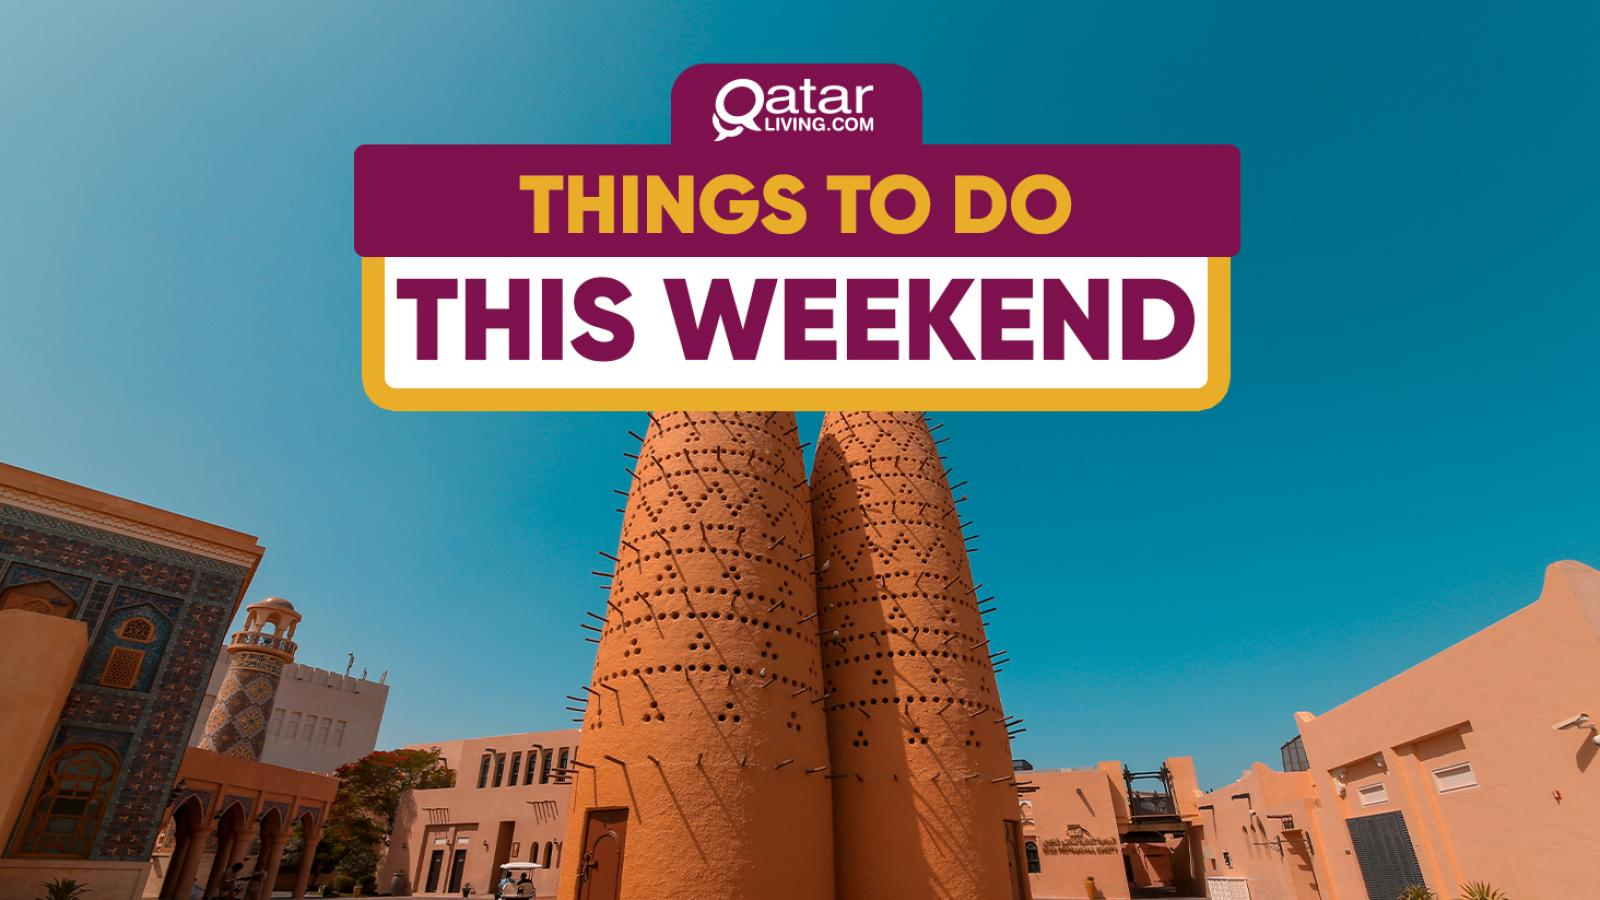 Five things to do in Qatar this weekend: January 7-9